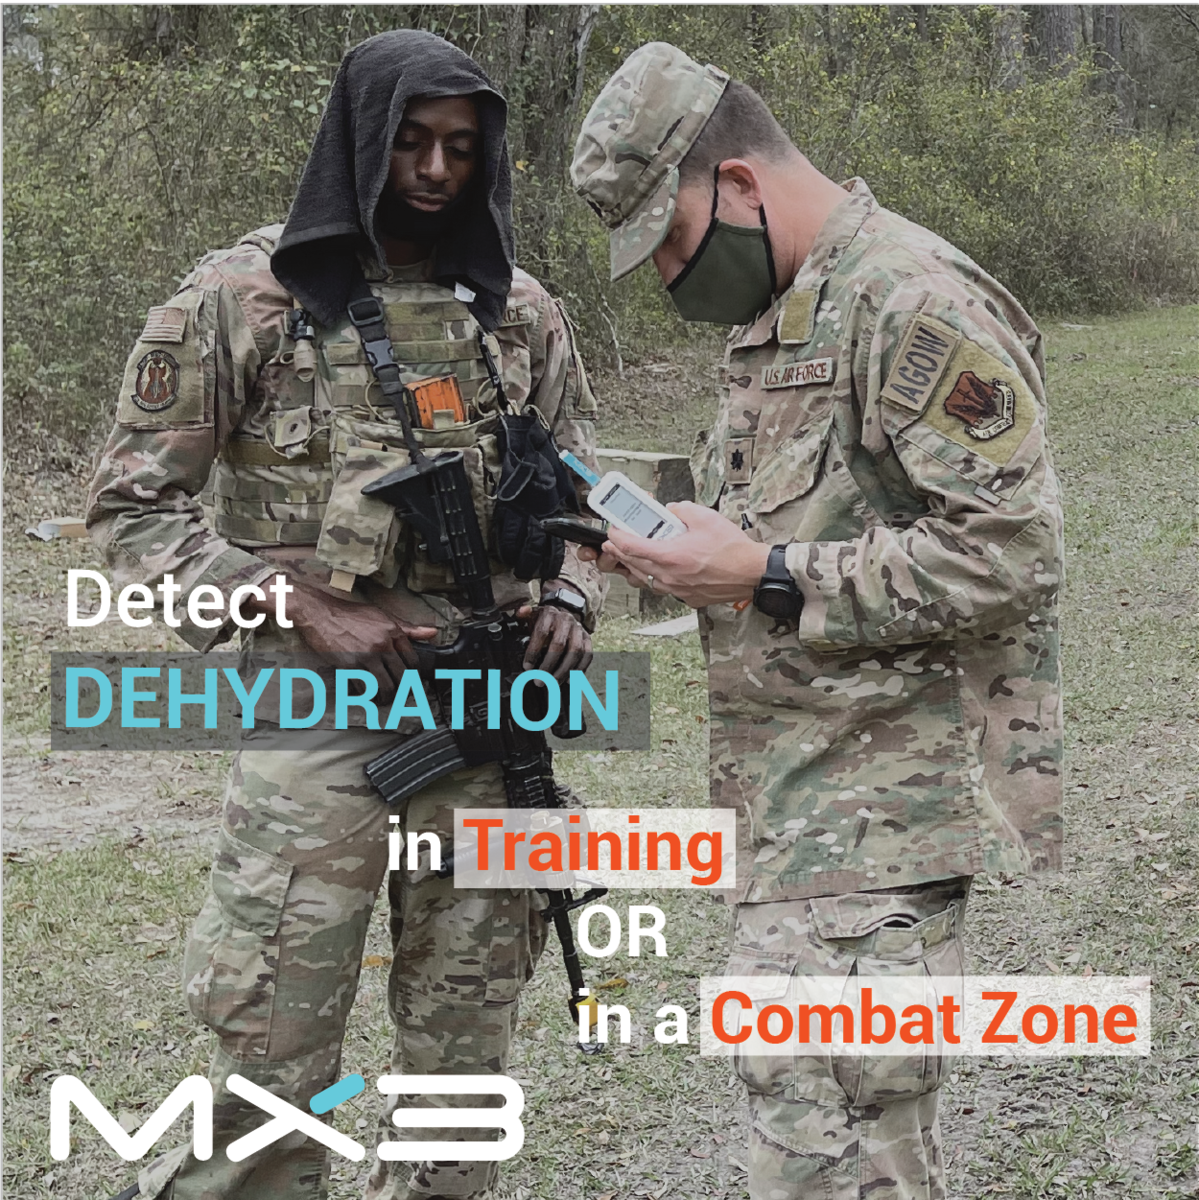 Military: Detect Dehydration in training or combat